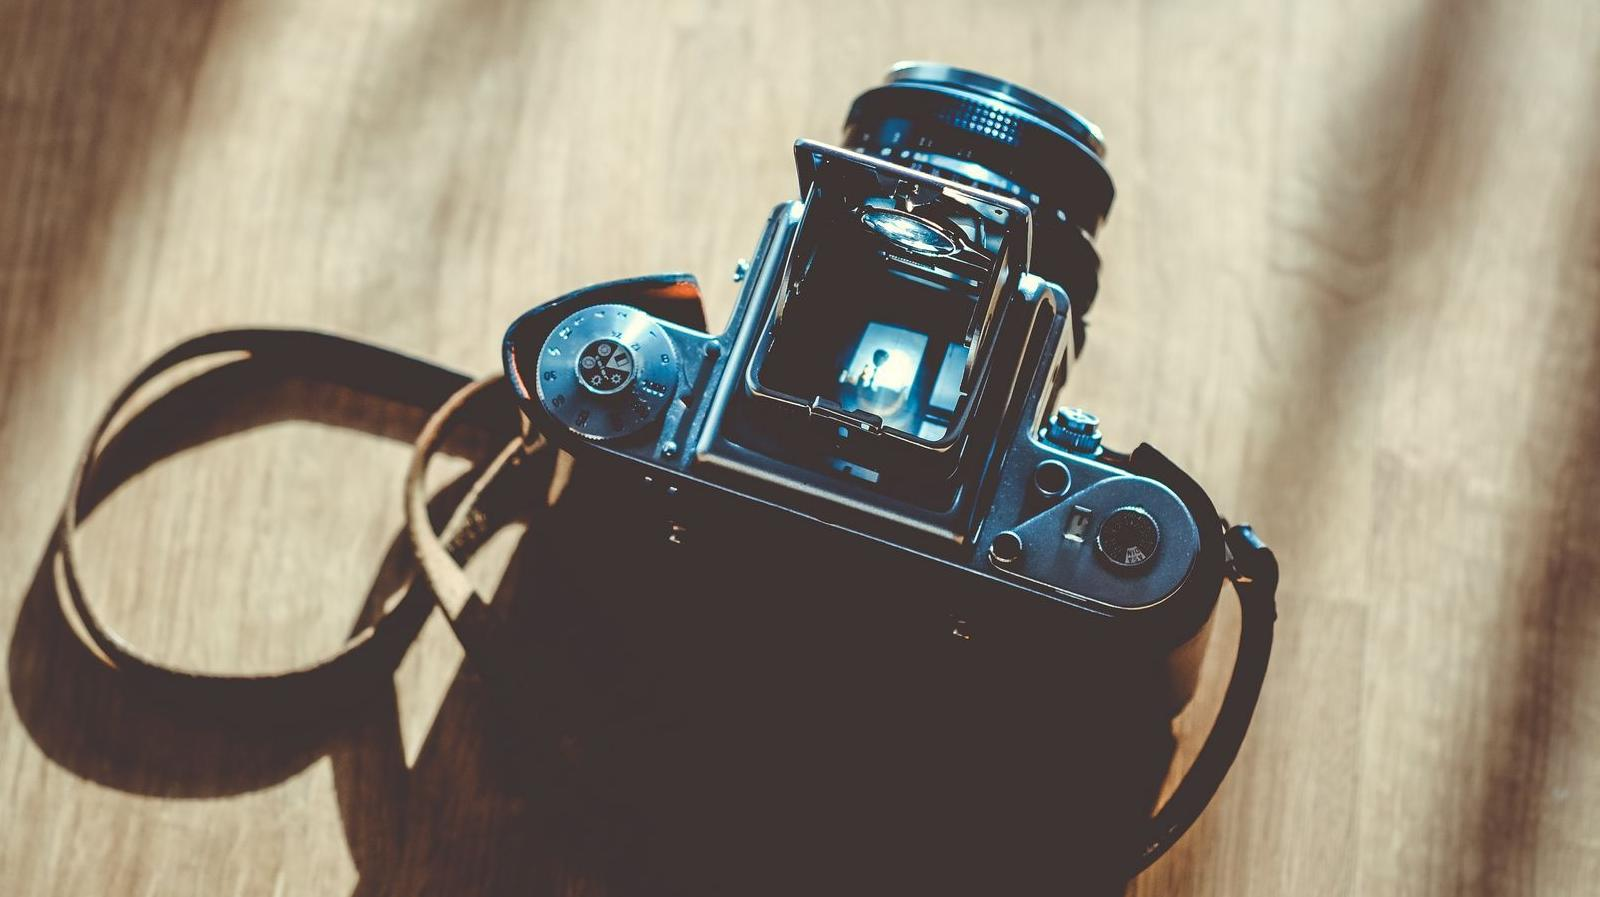 COURTYARD TERRACES -Stock photo of a camera sitting on a table